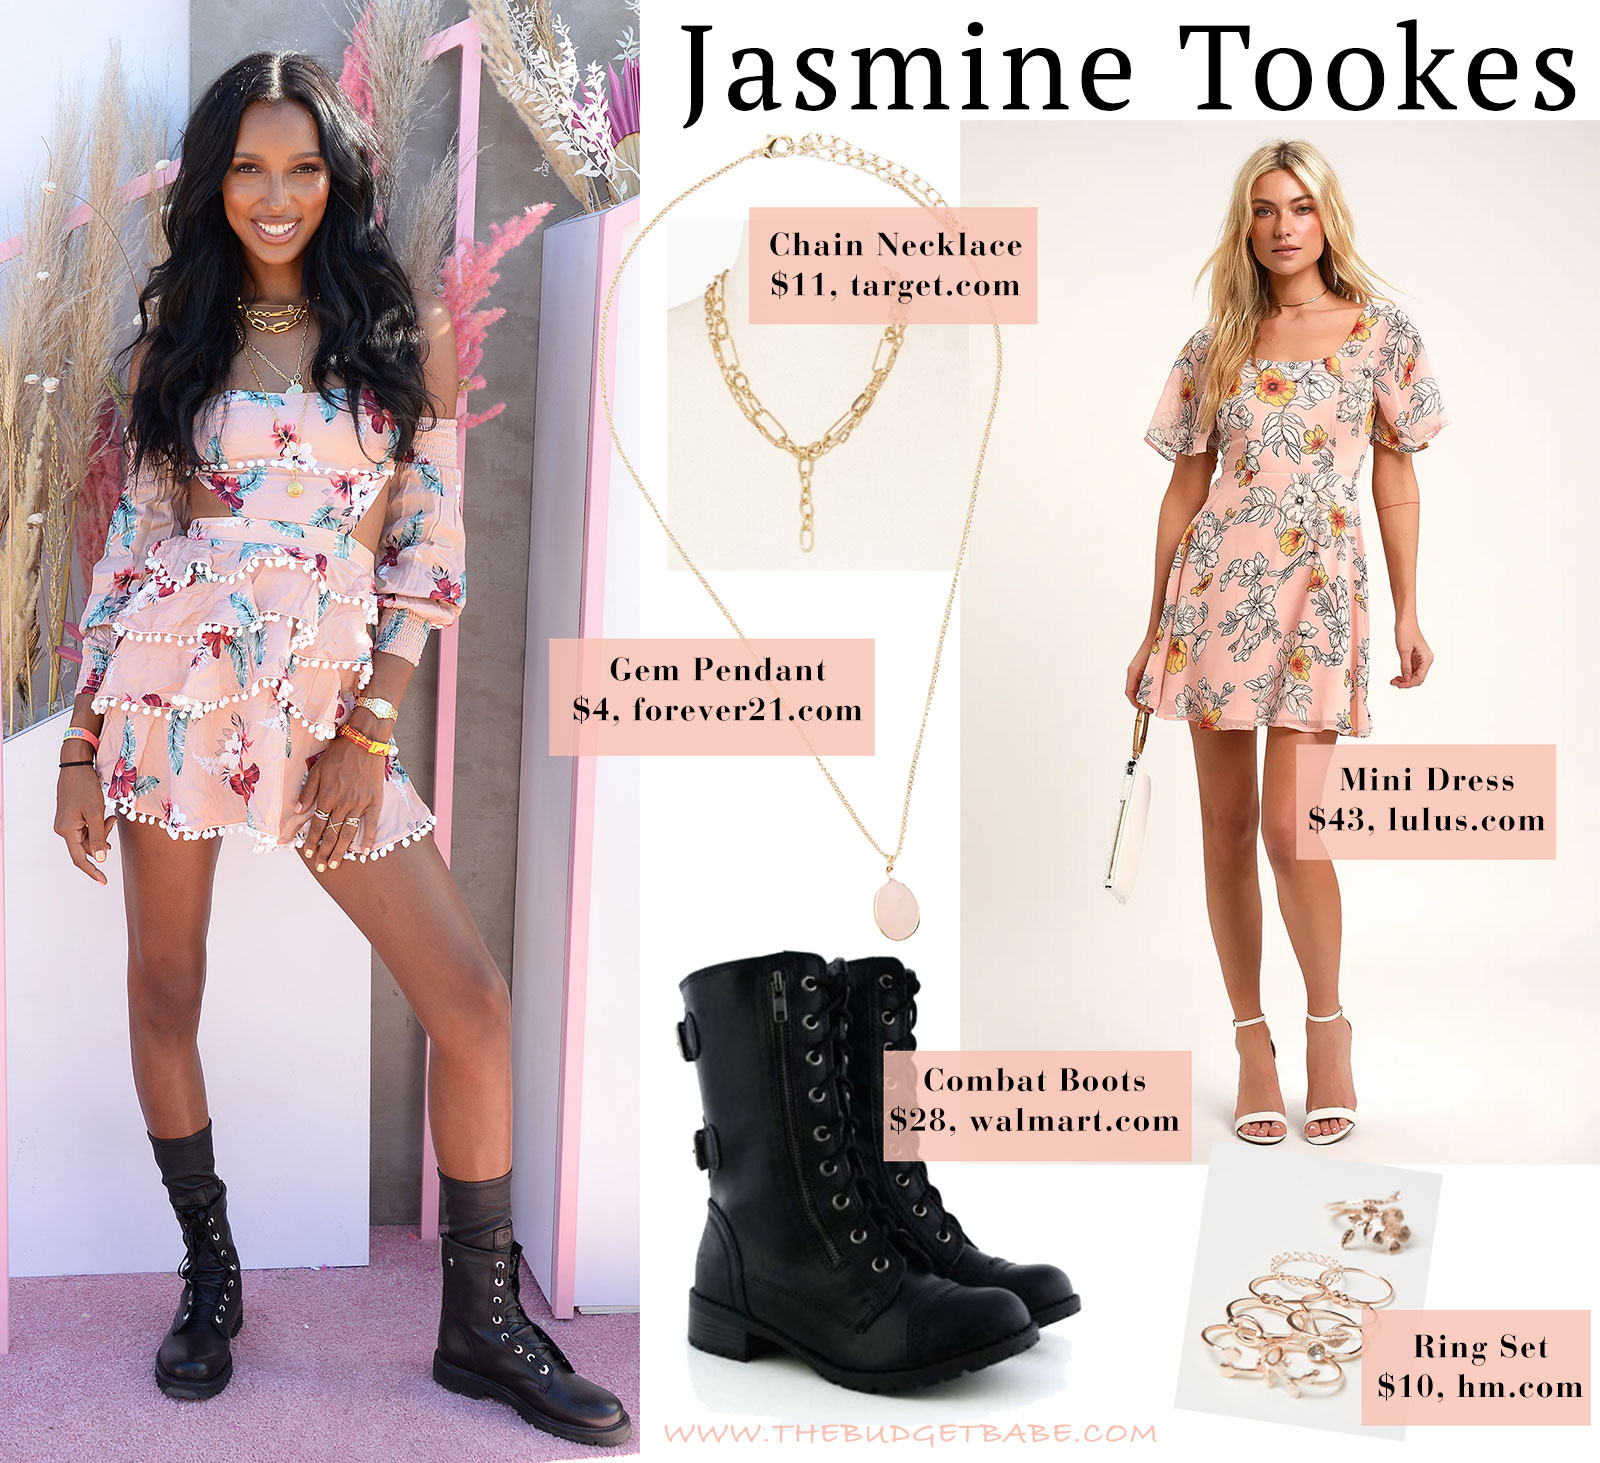 Jasmine Tookes at Coachella, love her style